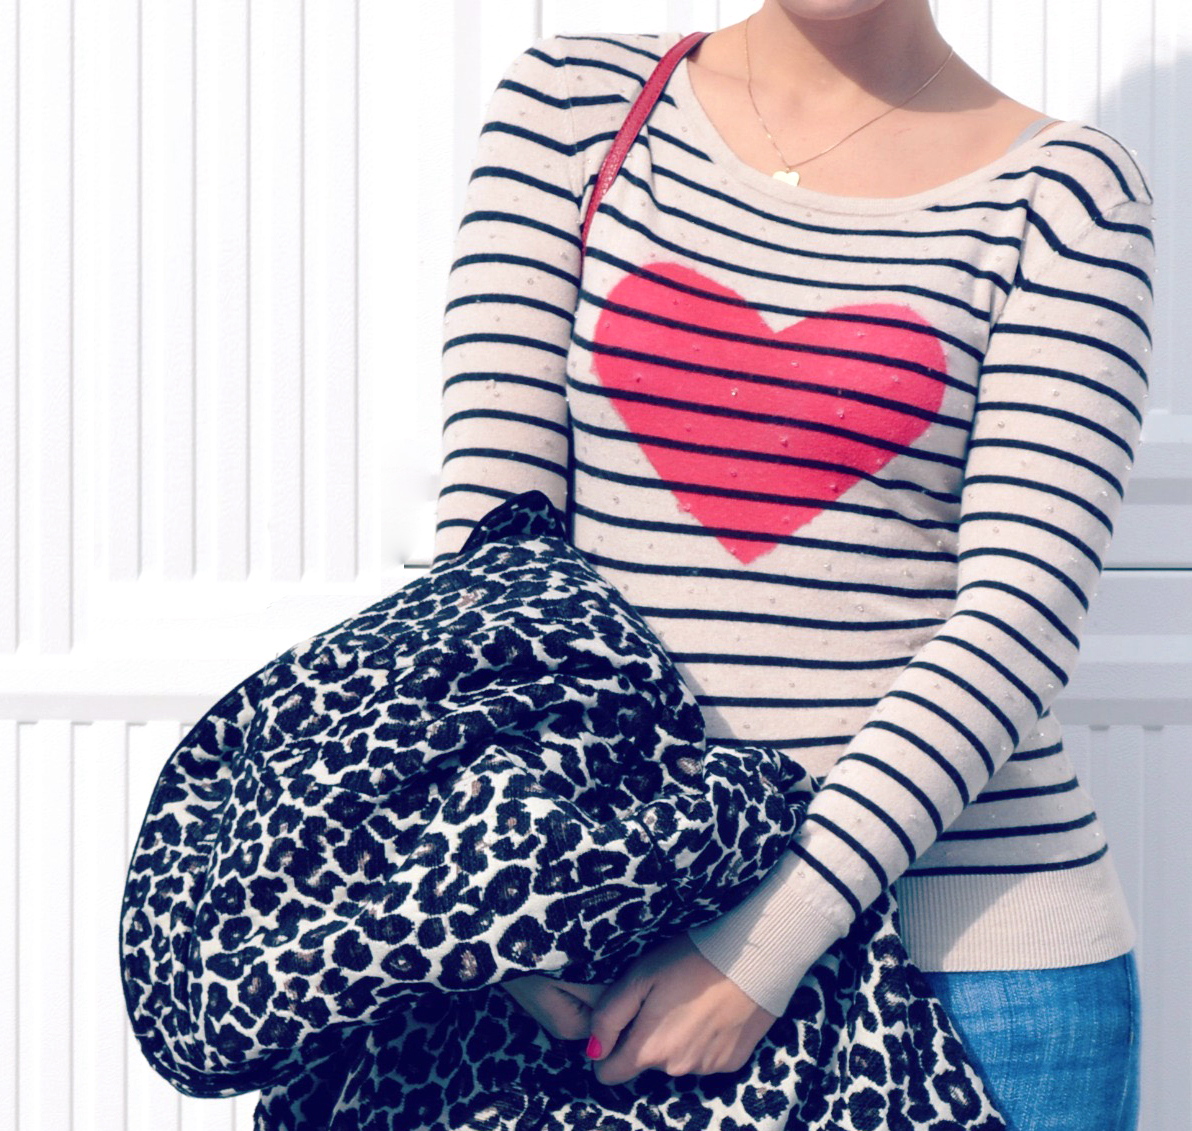 Heart Sweater DIY with fabric paint for Valentine's Day | Amanda Zampelli